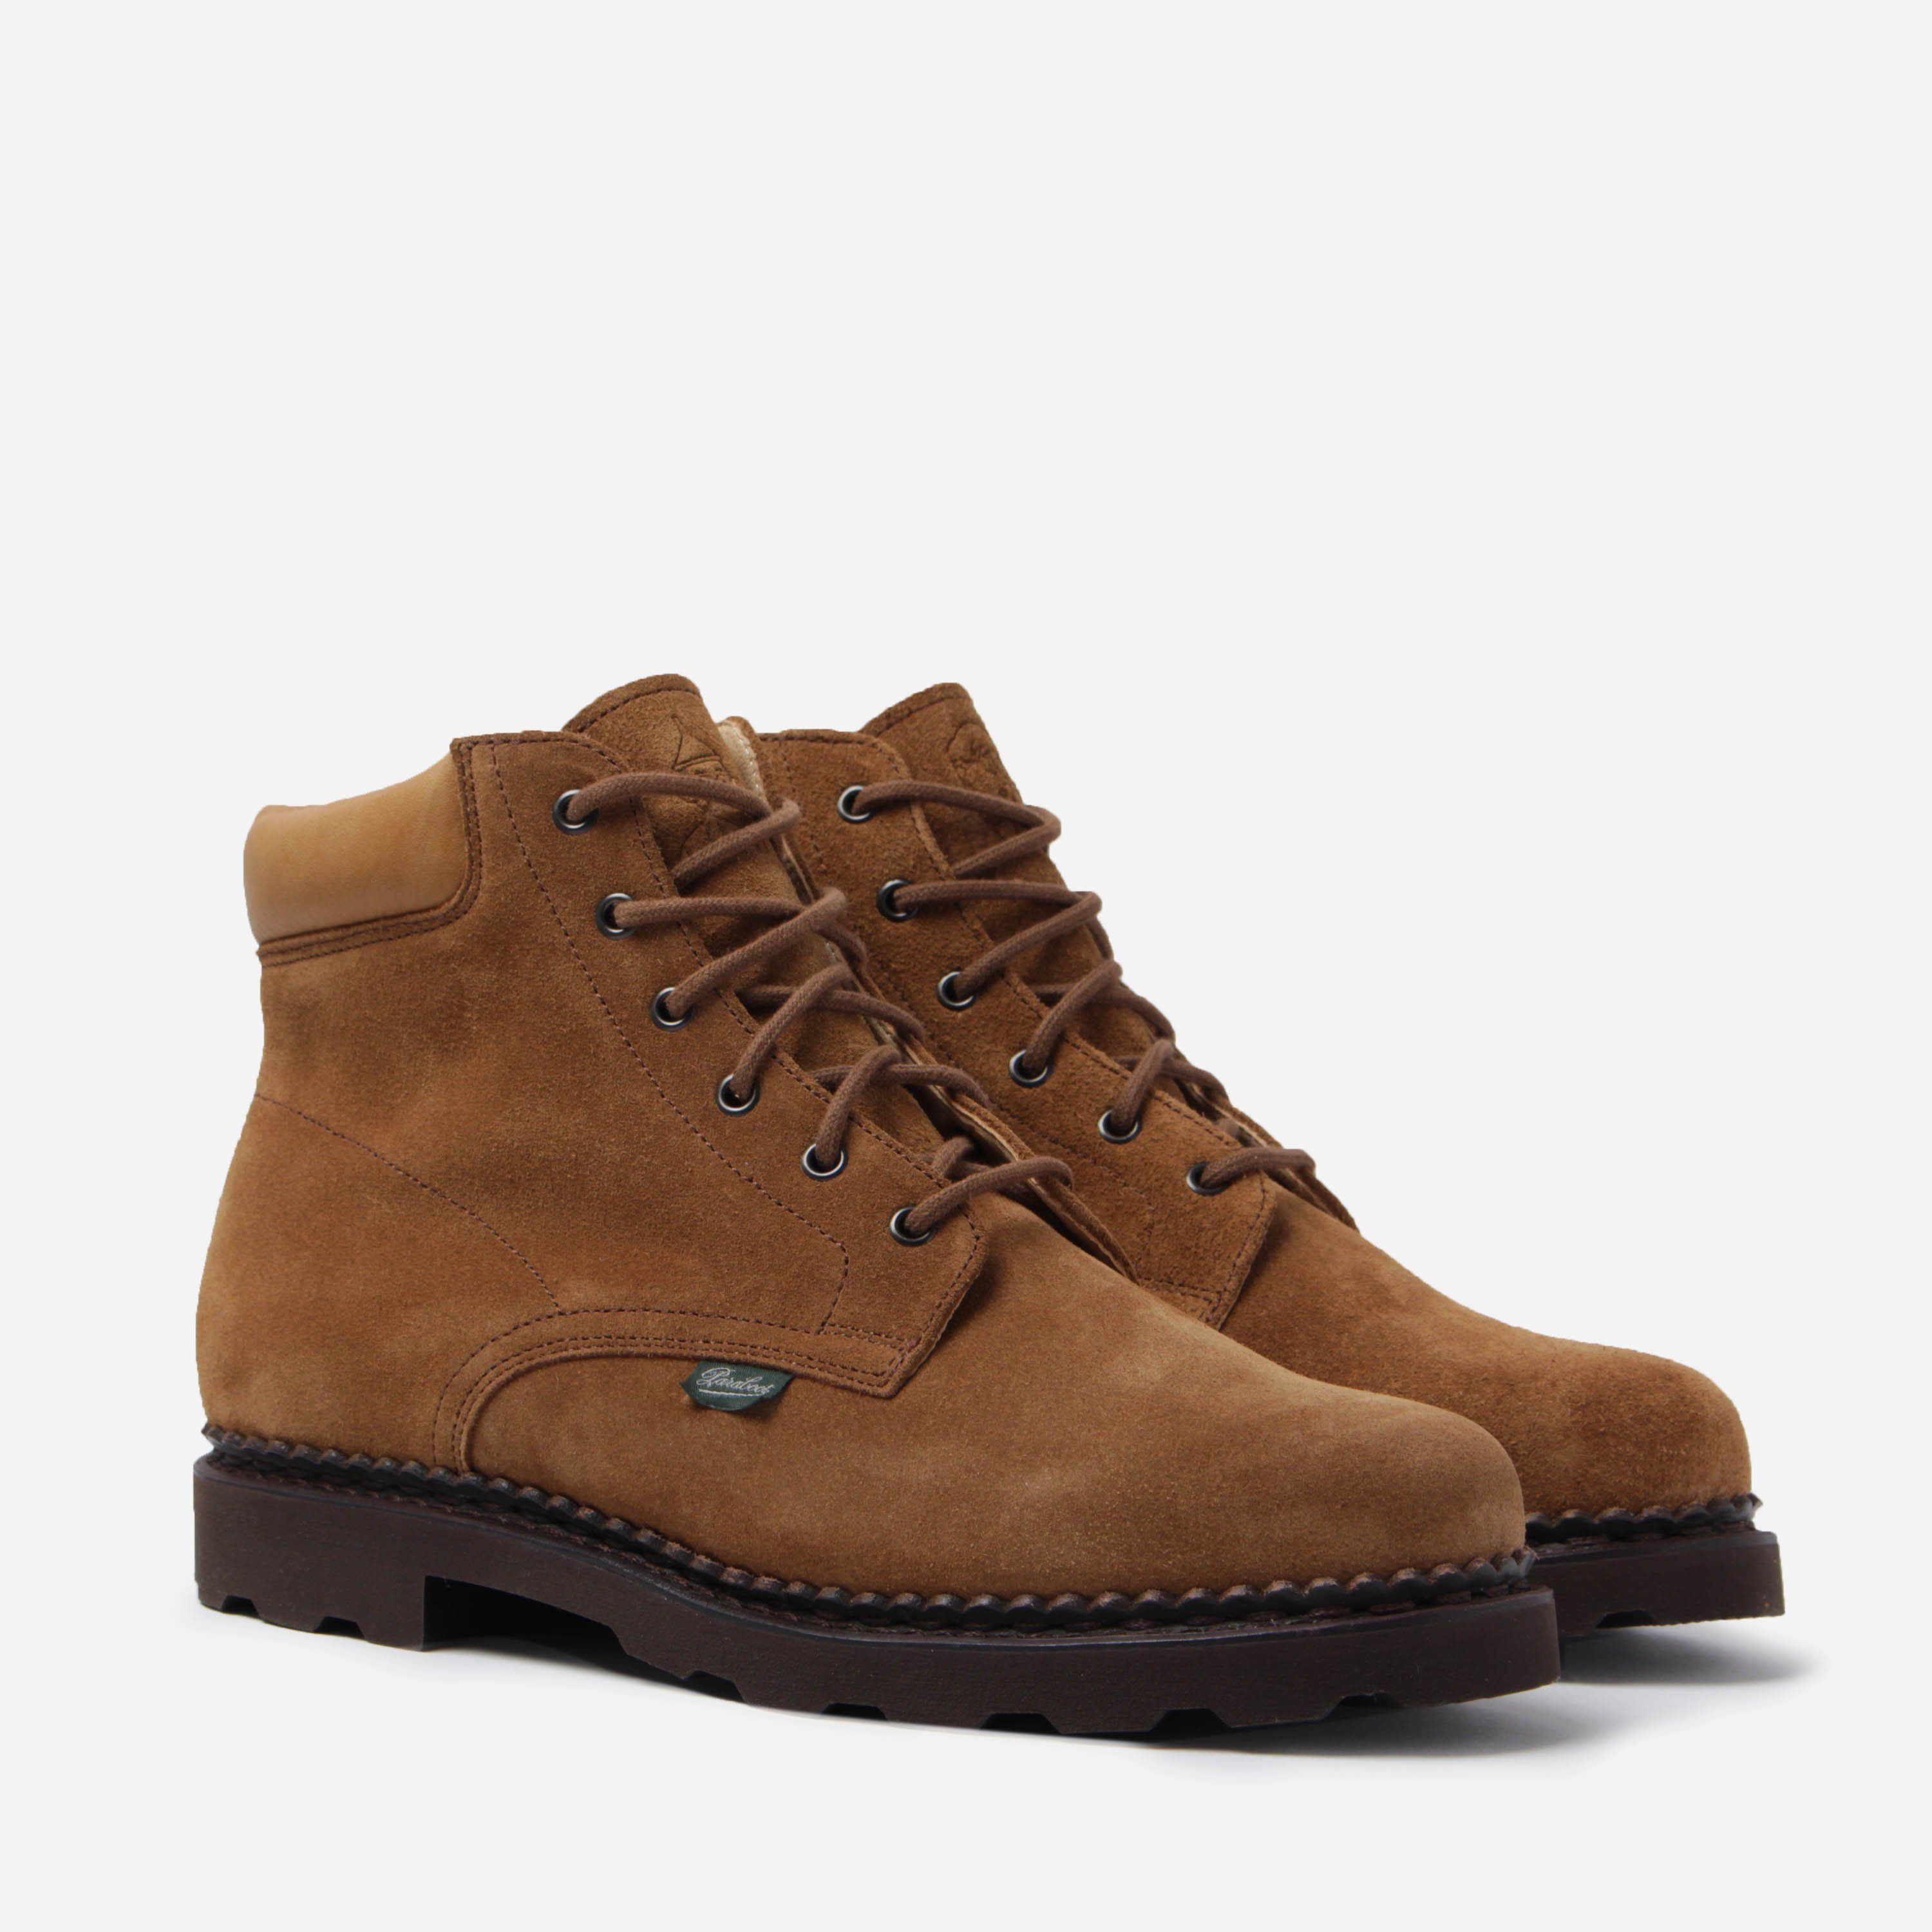 Arpenteur x Paraboot Suede Leather Boot